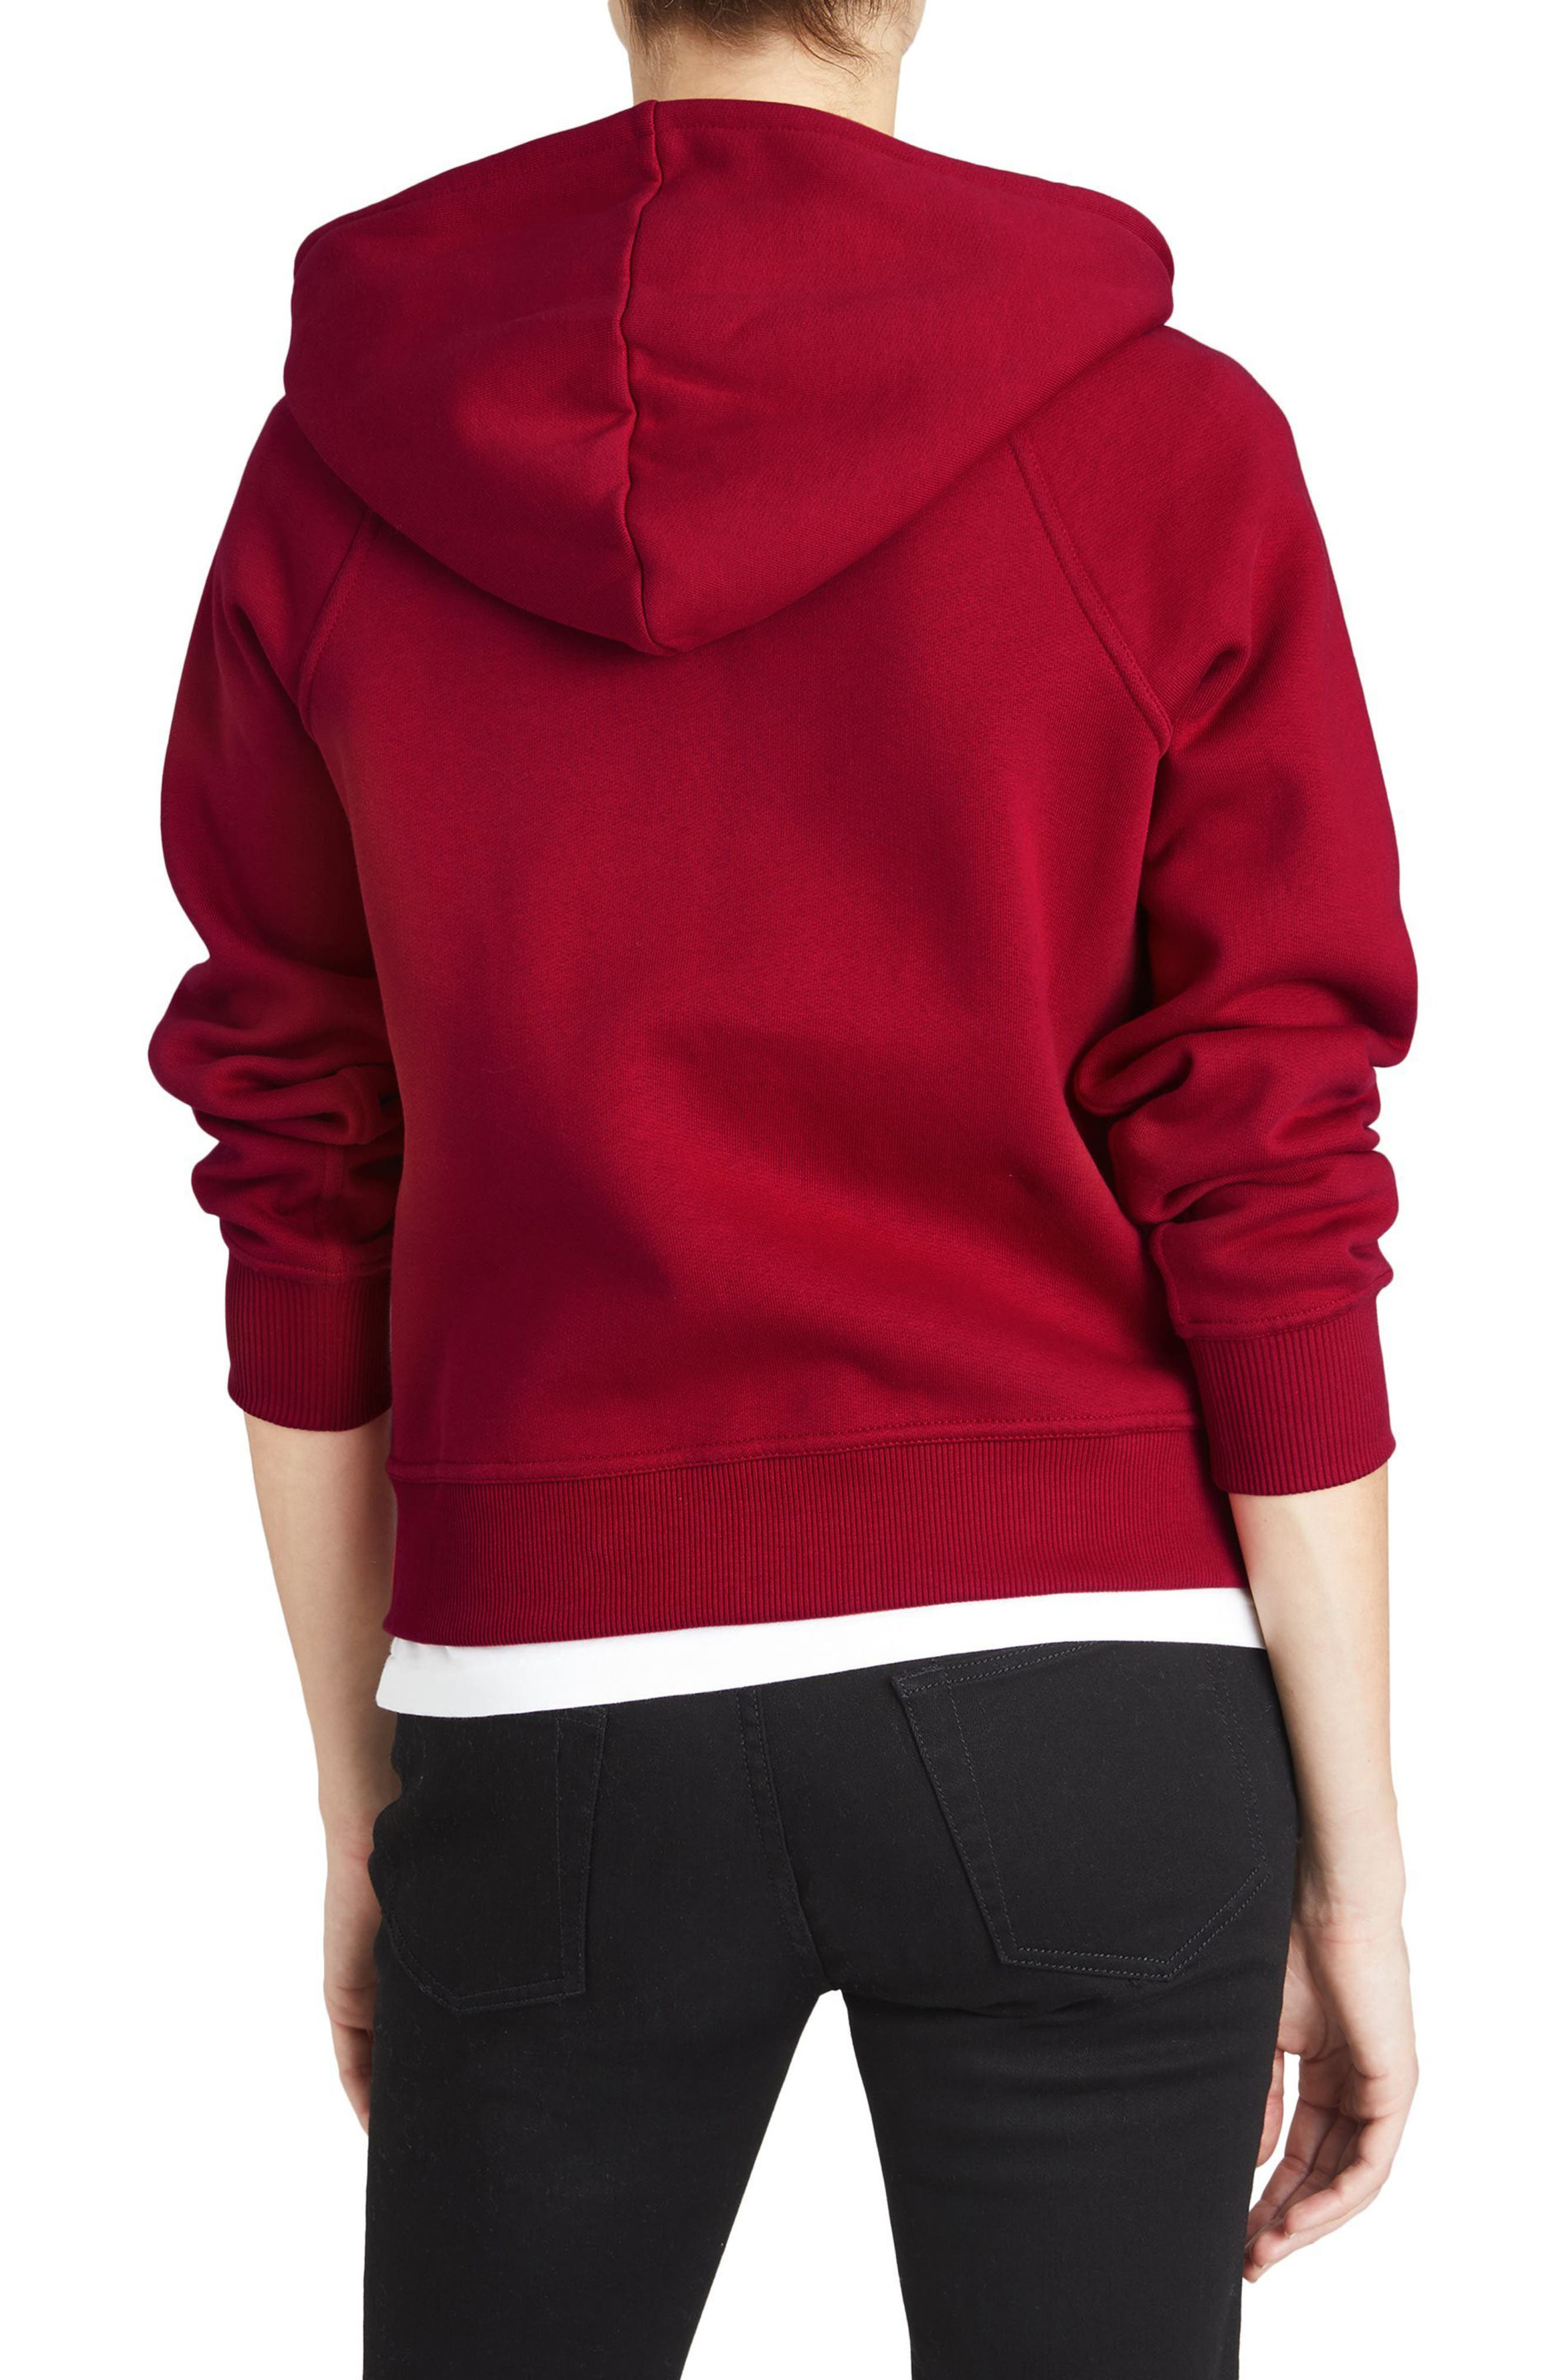 BURBERRY, Check Print Hoodie, Alternate thumbnail 2, color, PARADE RED